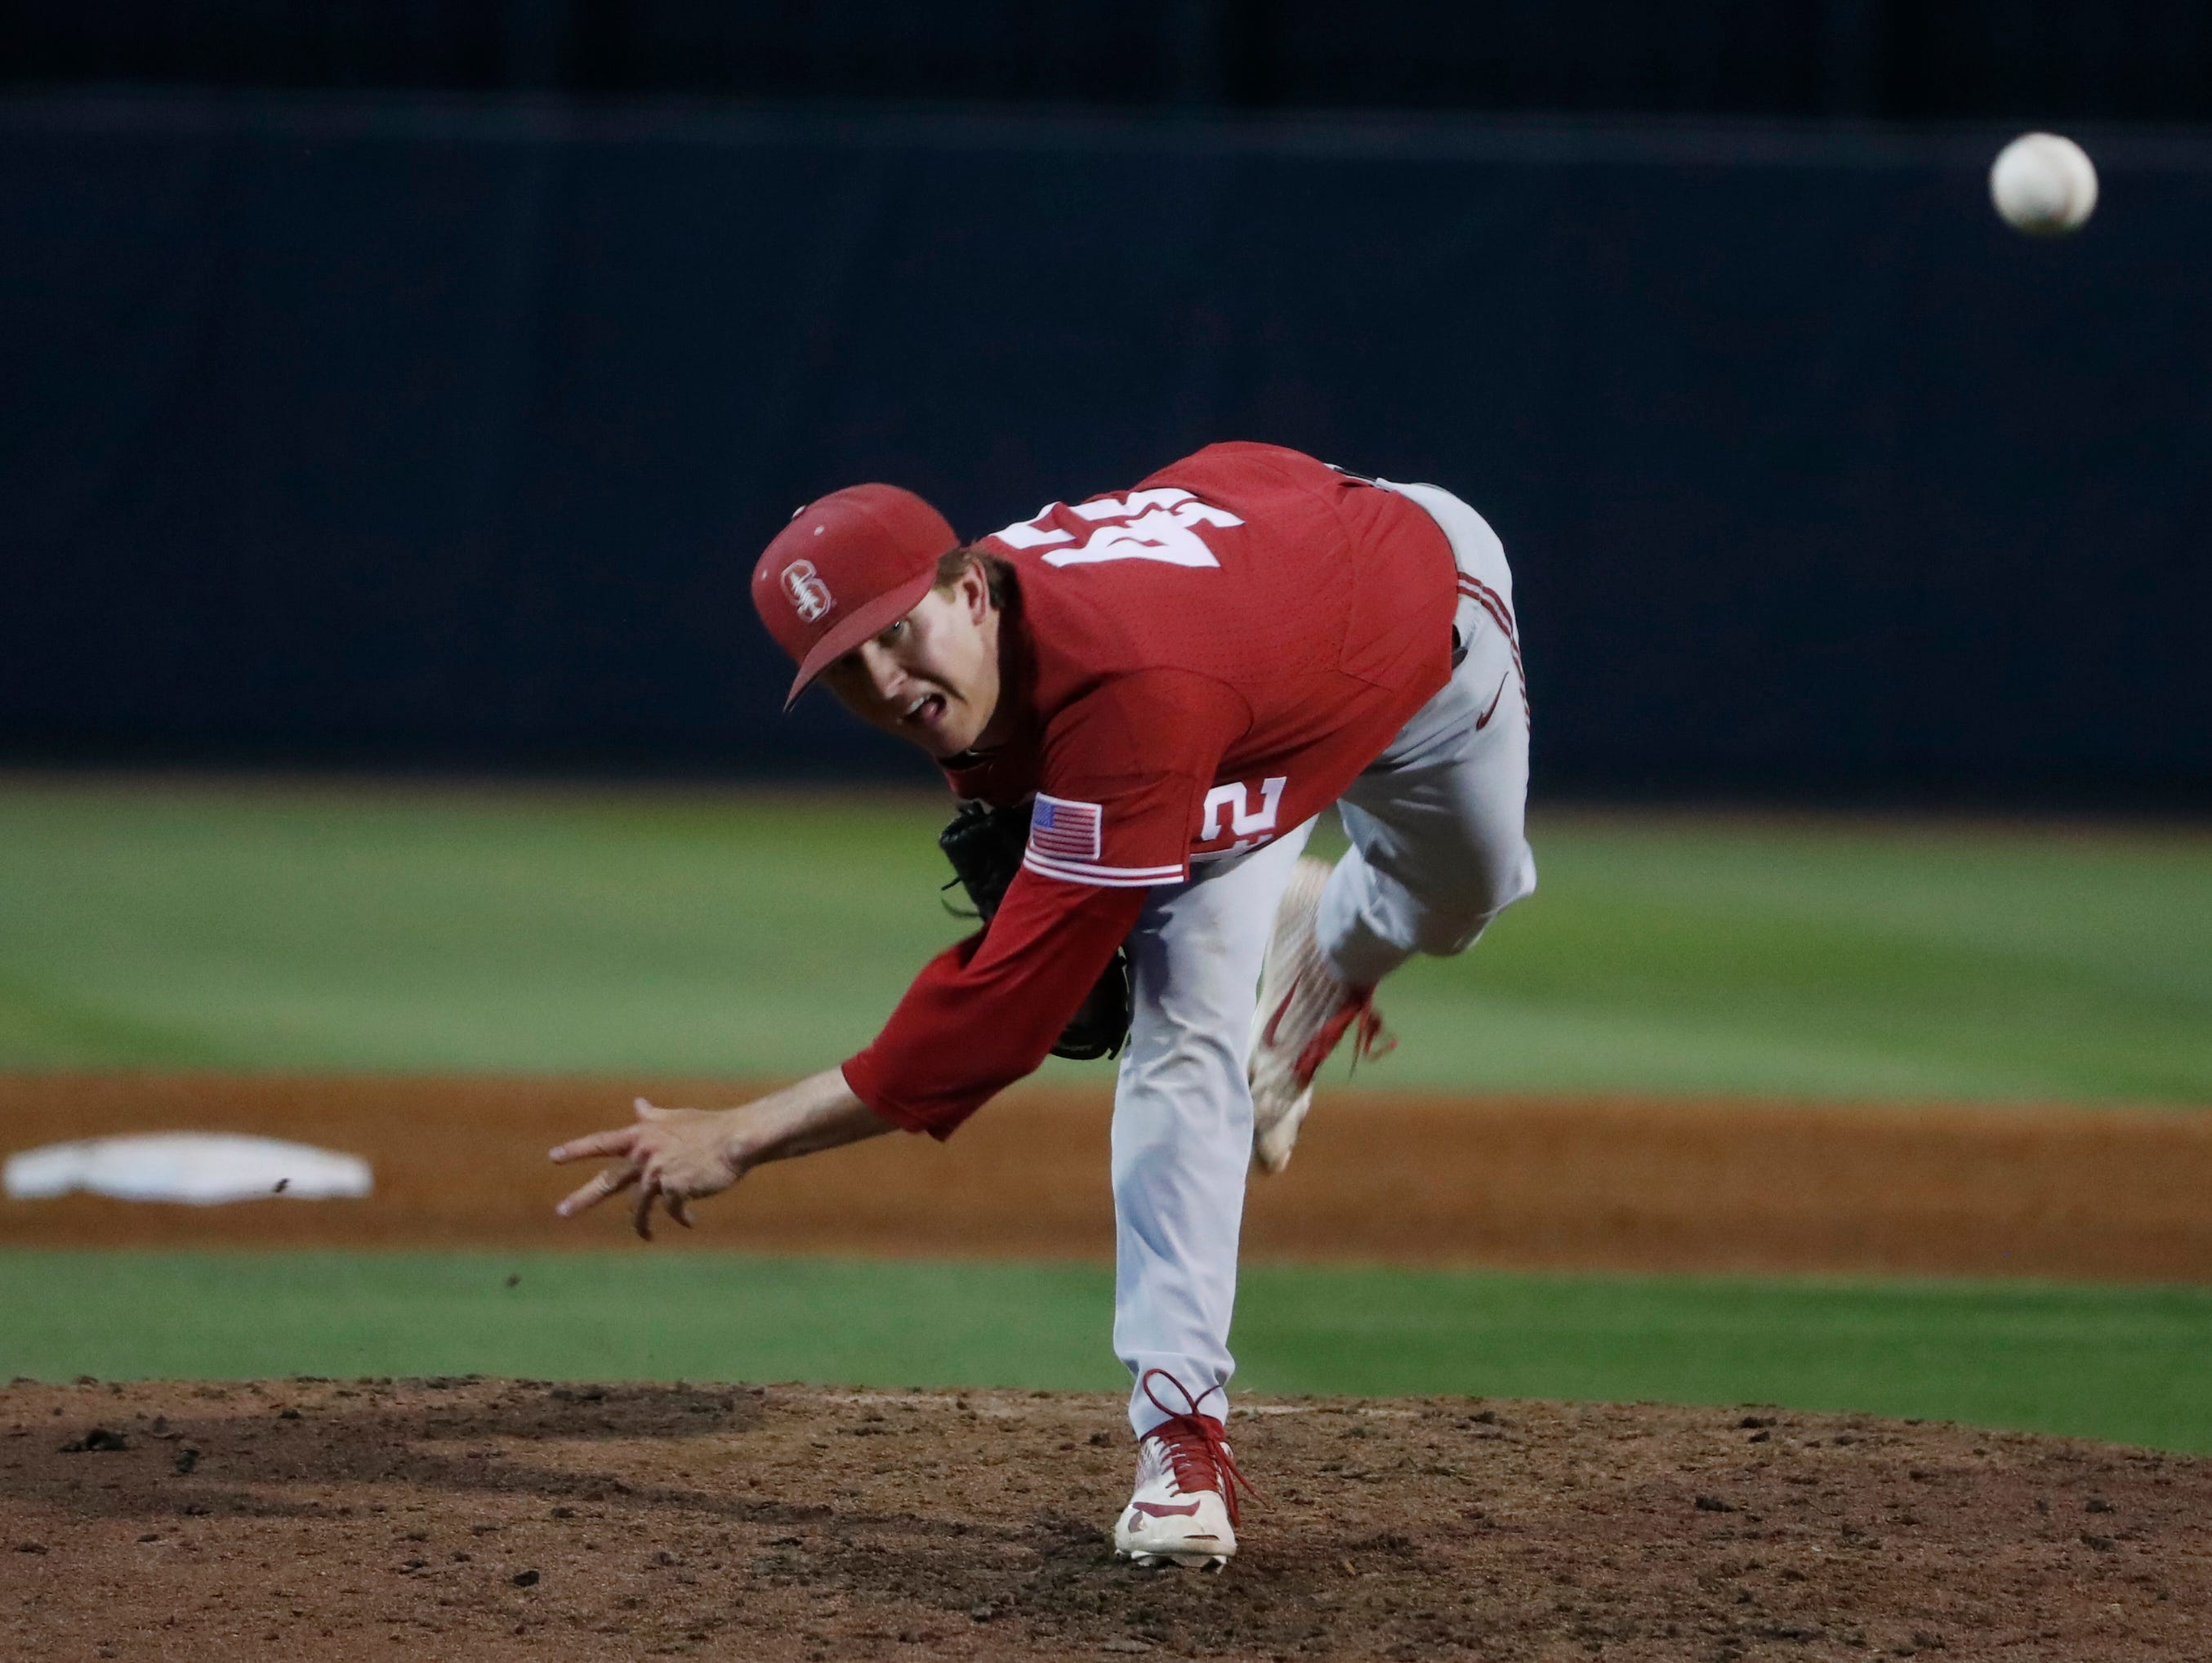 Stanford's Austin Weiermiller (42) pitches in relief during the sixth inning against ASU at Phoenix Municipal Stadium in Phoenix, Ariz. on May 24, 2019.